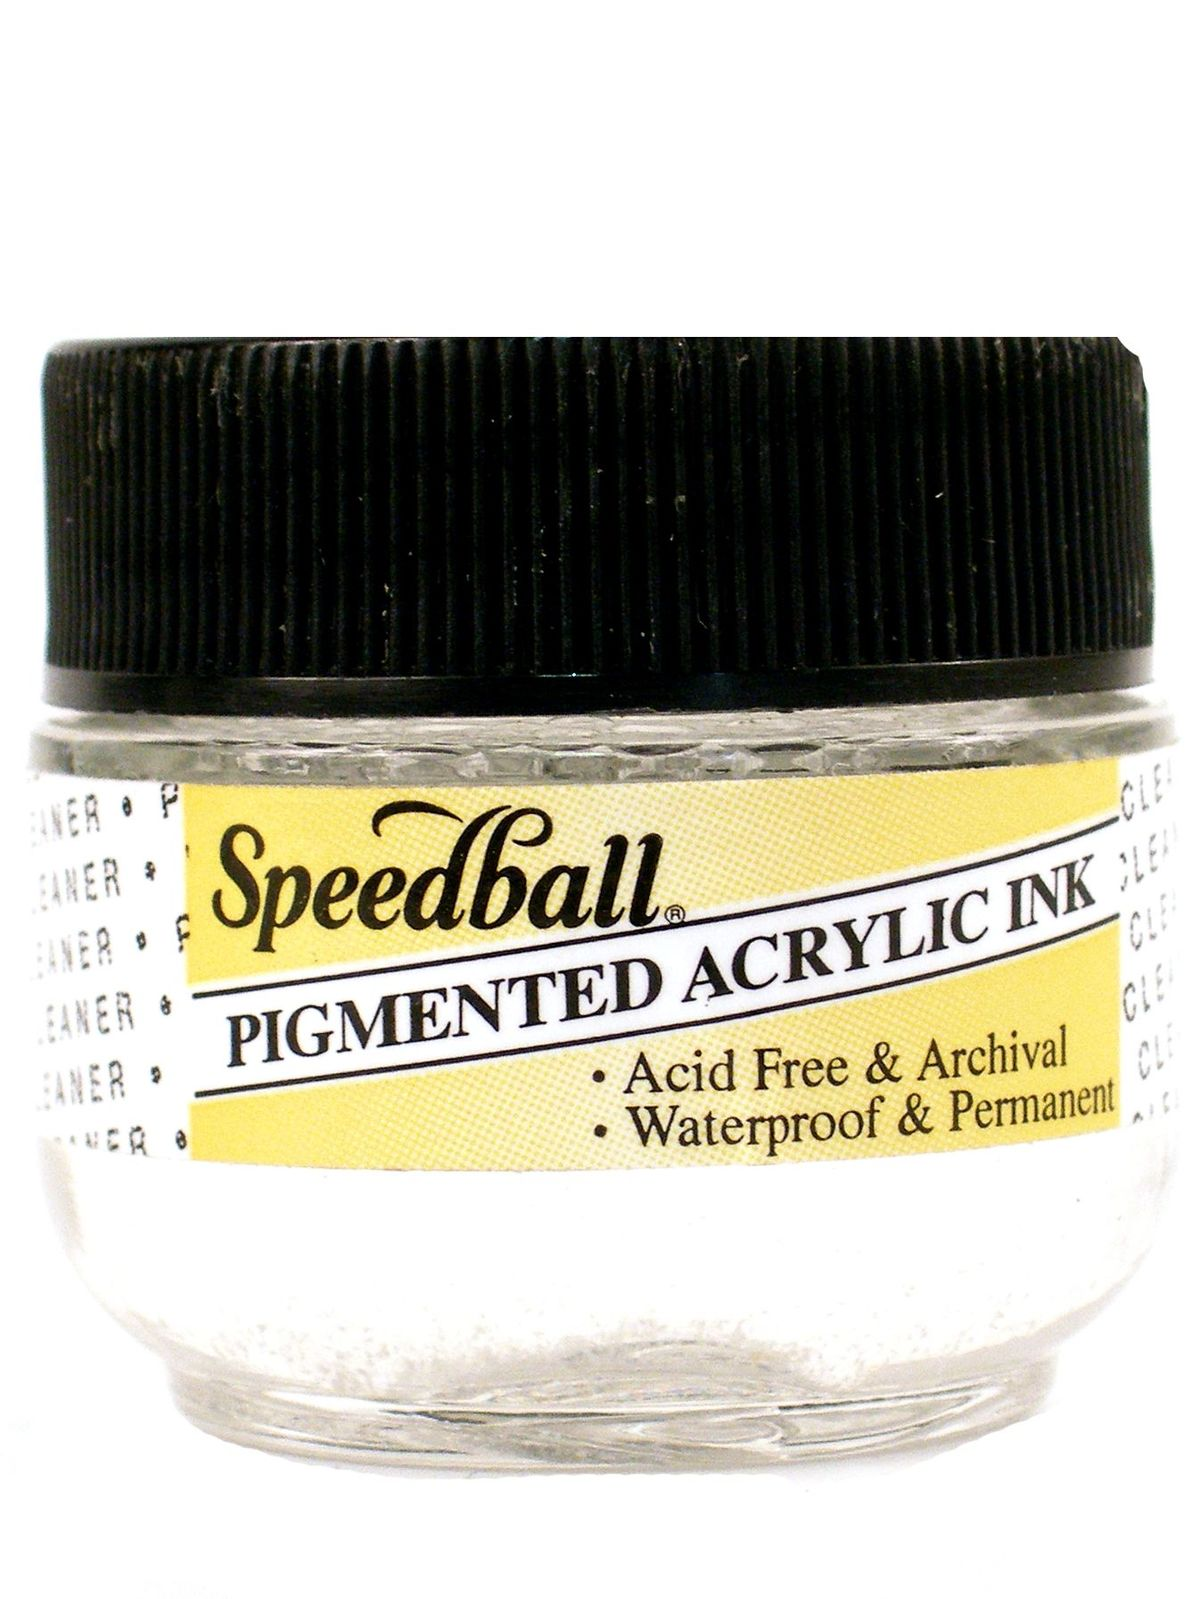 Pen Cleaner for Pigmented Acrylic Ink